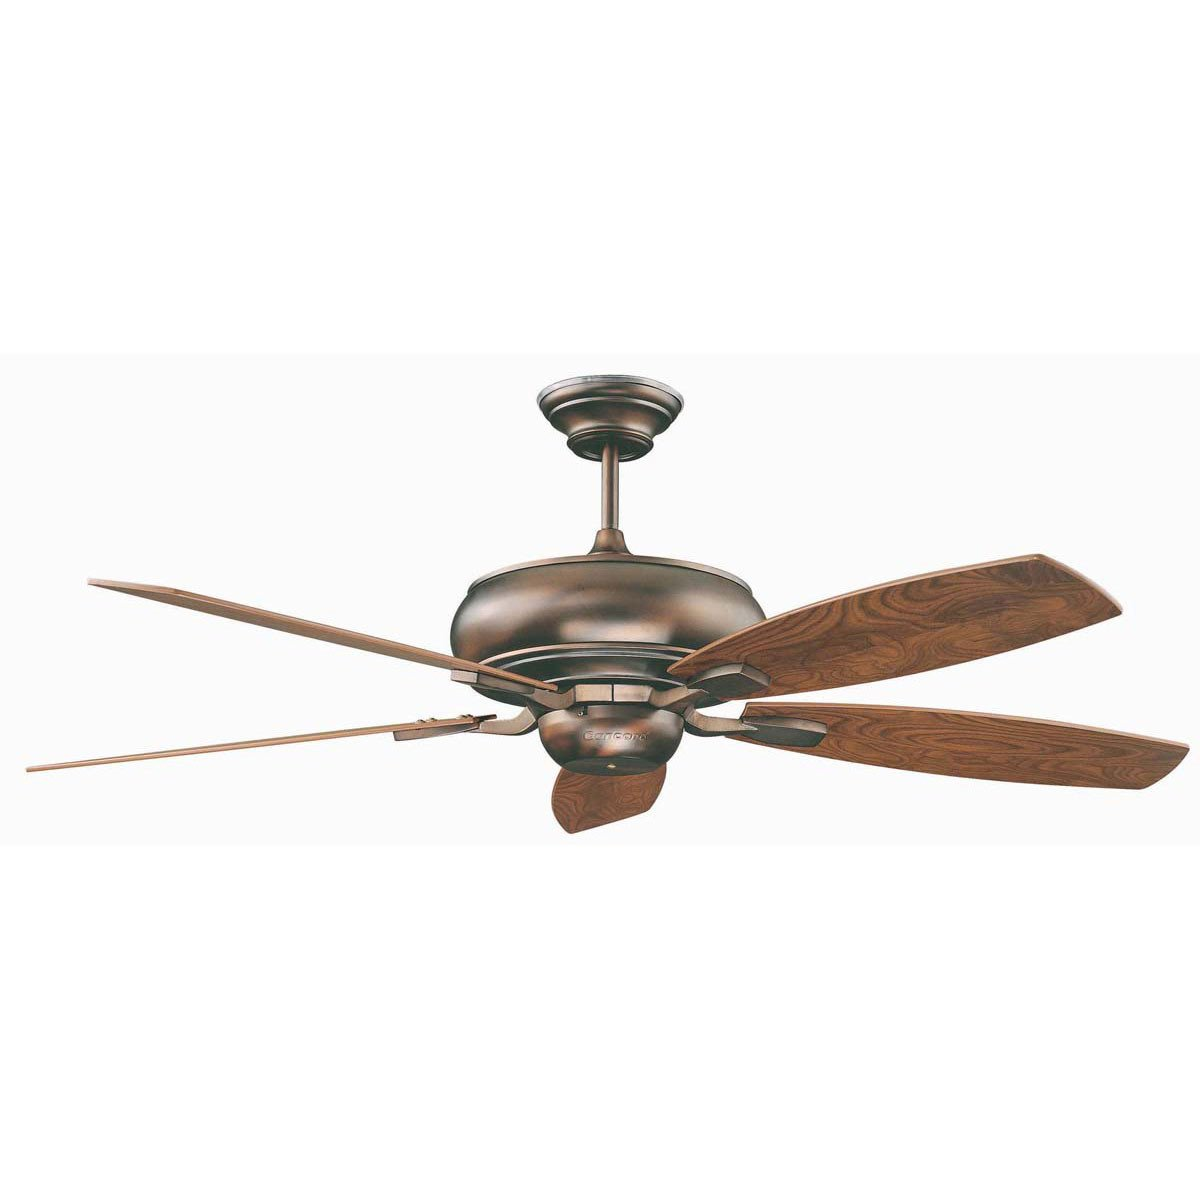 "Concord Fans Contemporary 60"" Roosevelt Oil Brushed Brass Large Ceiling Fan"